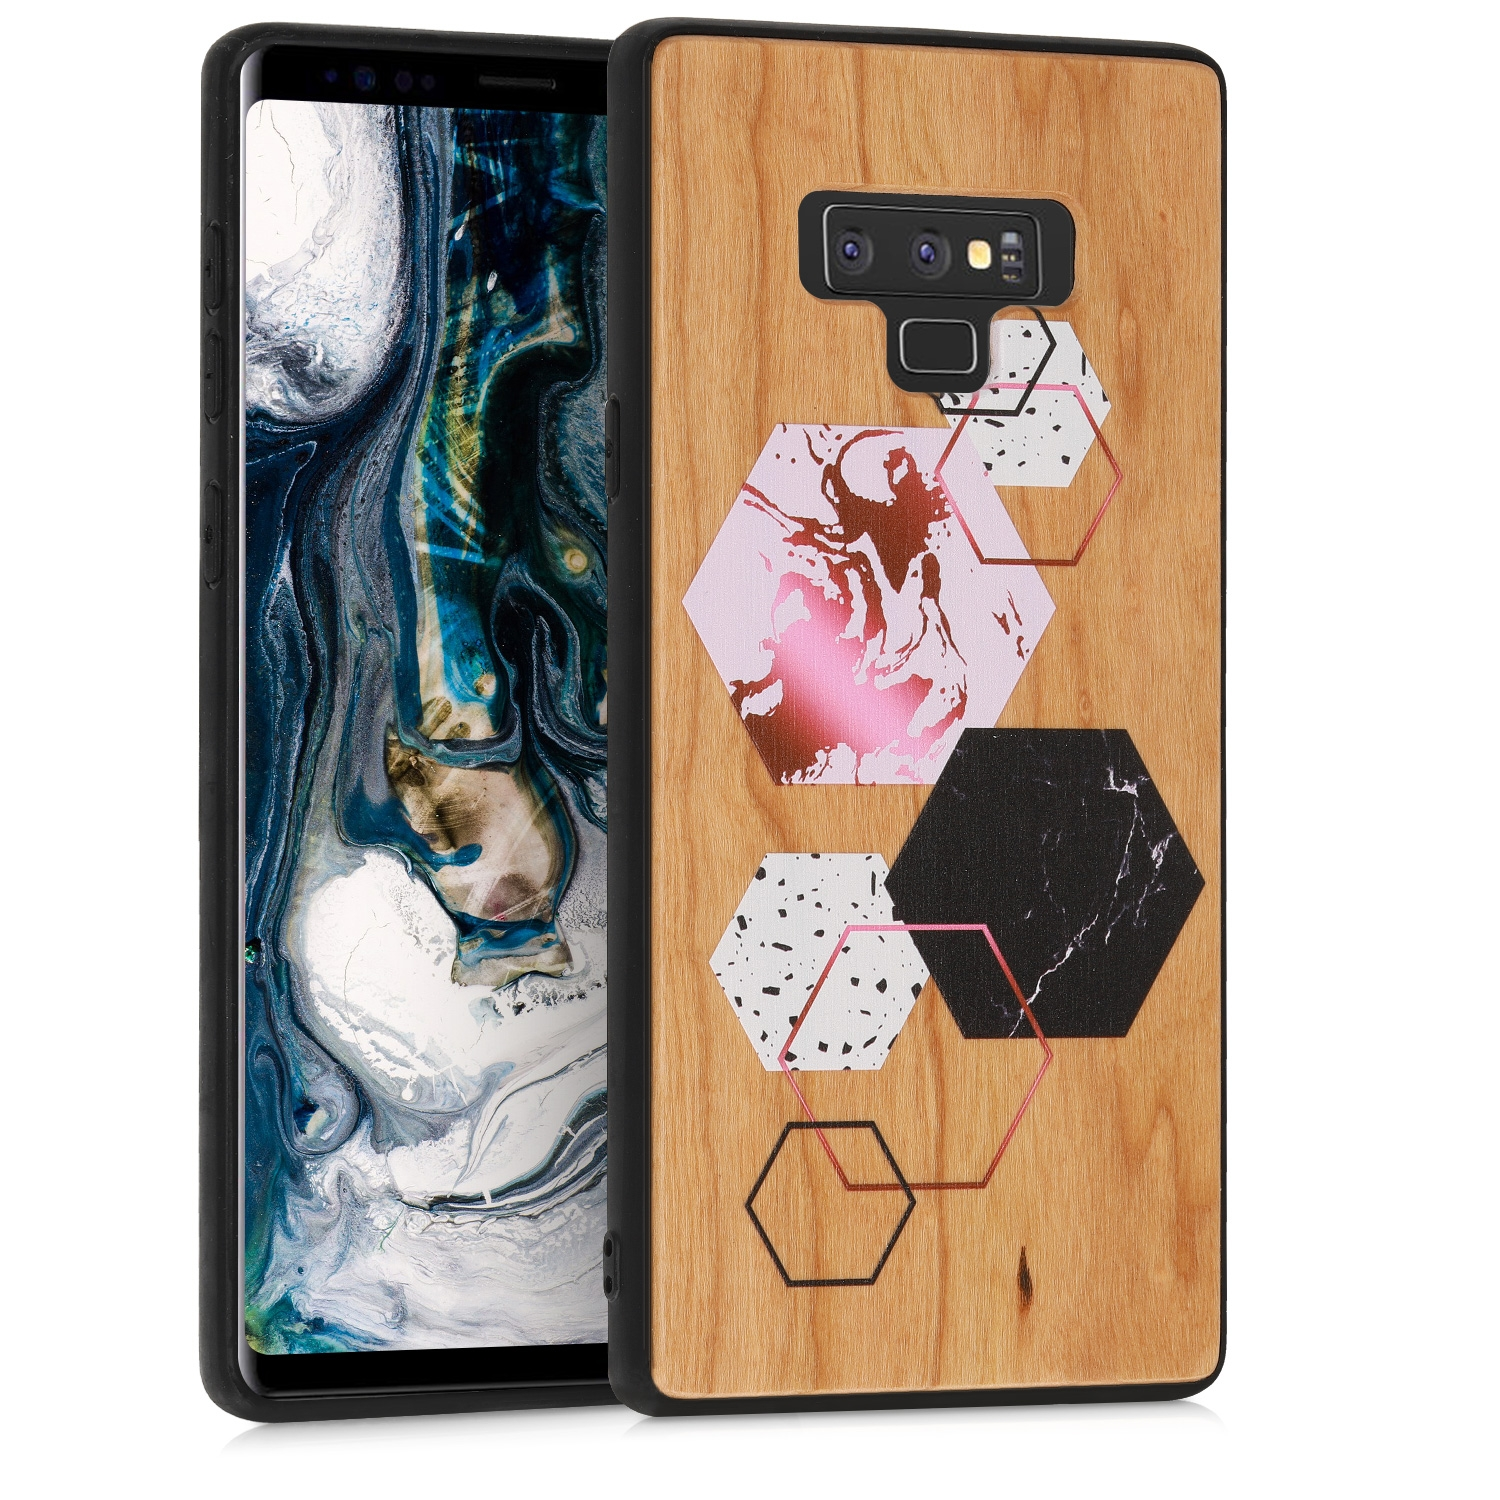 KW Σκληρή Ξύλινη Θήκη Samsung Galaxy Note 9 - Honeycomb cherrywood (47350.03)